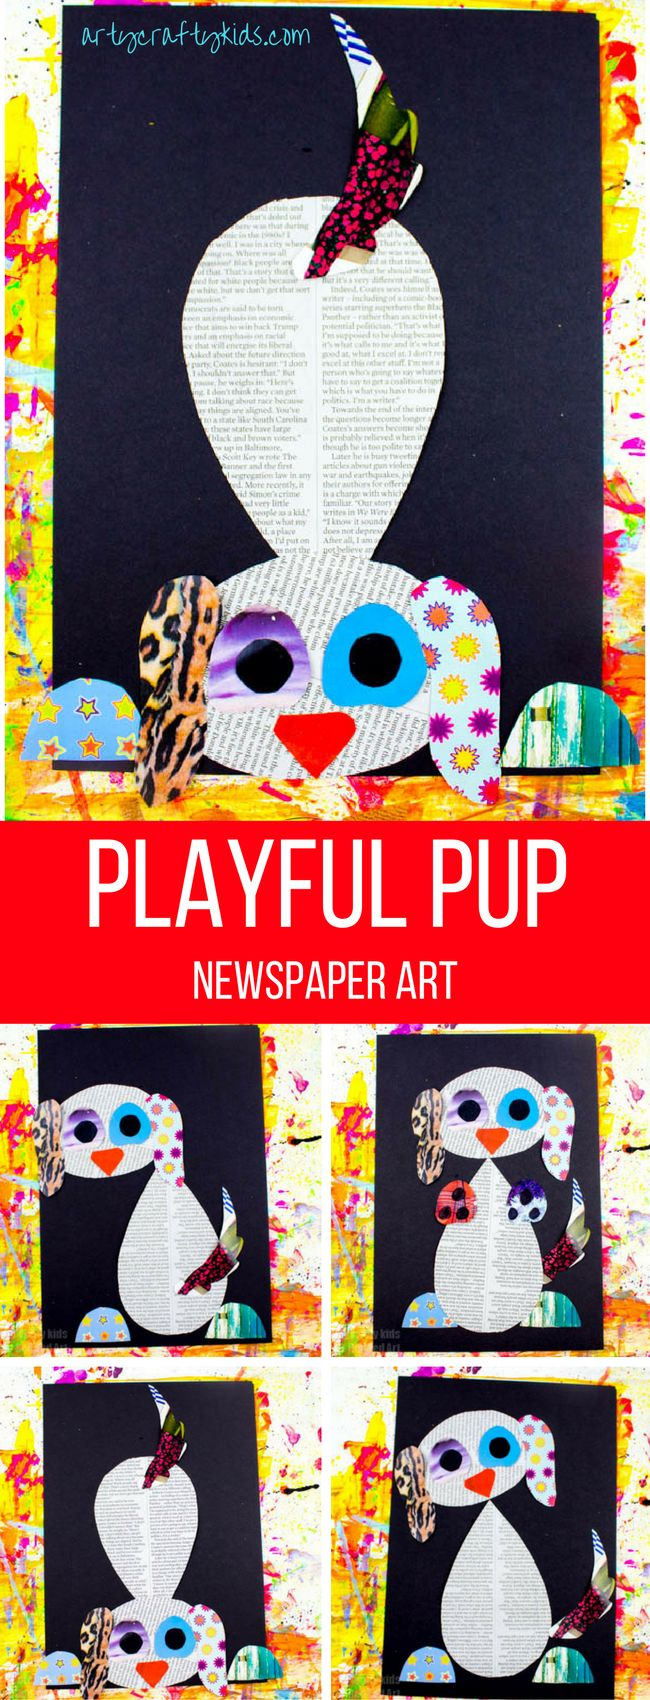 Arty Crafty Kids Art Playful